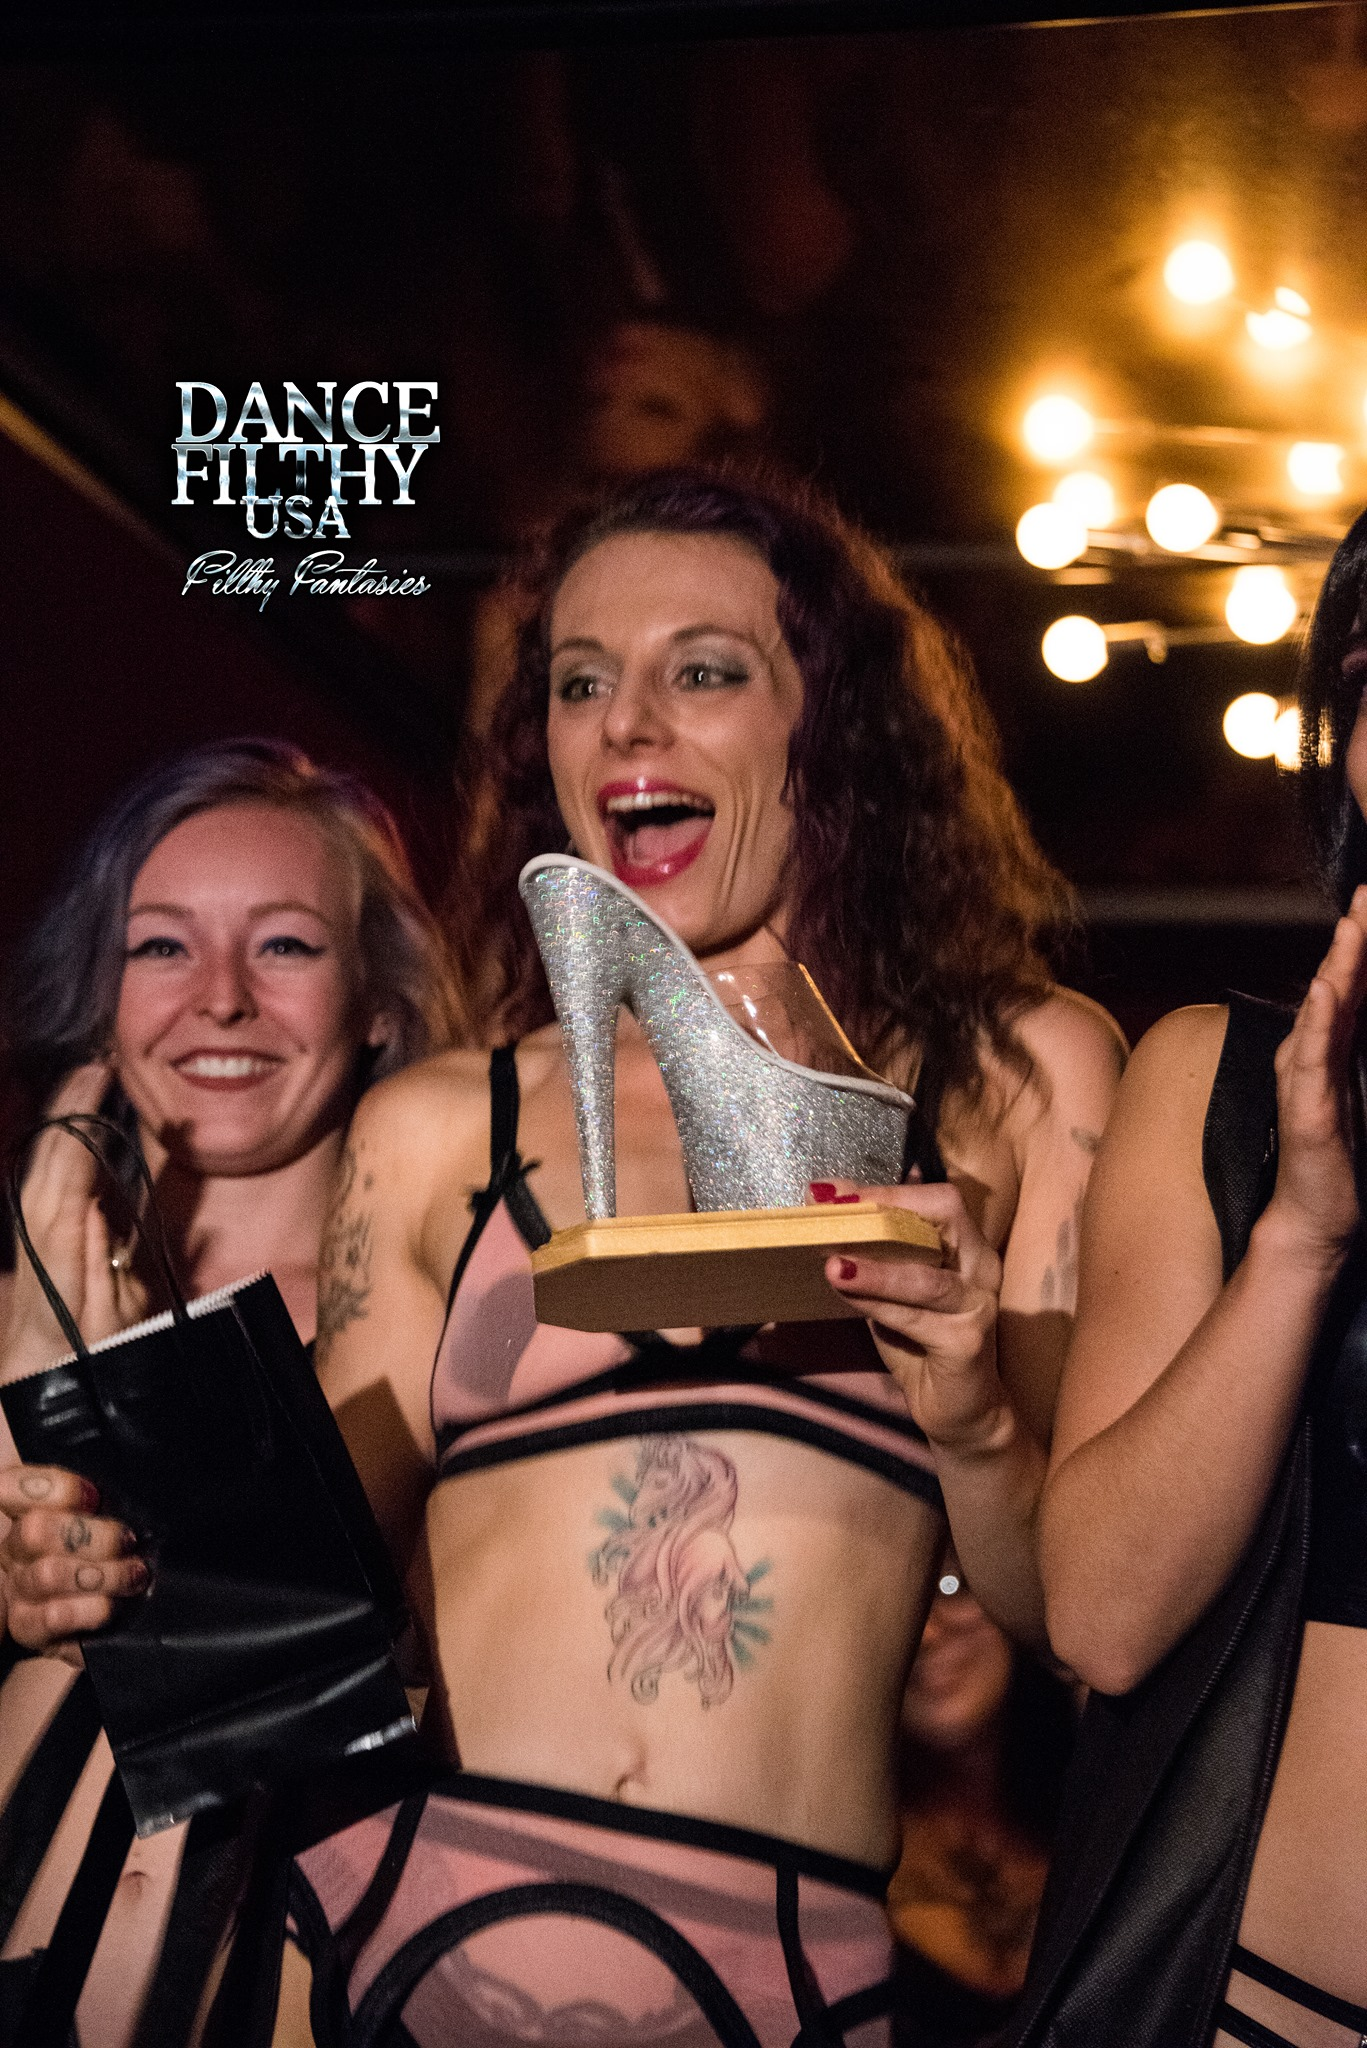 WINNER: 2nd place, Amateur division. Dance Filthy USA.